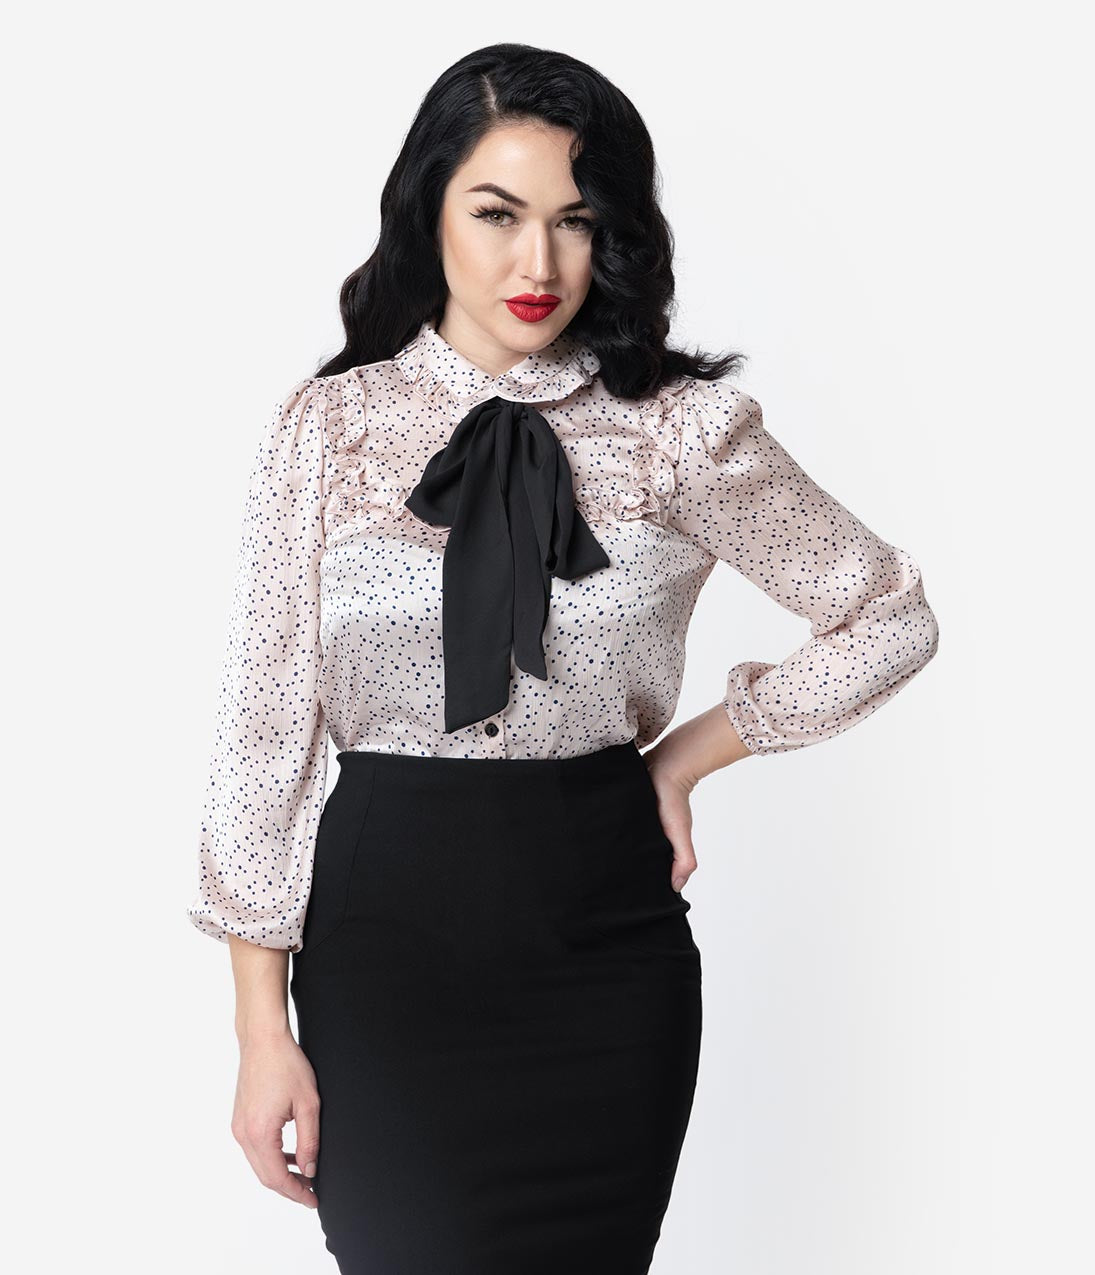 1940s Blouses, Shirts and Tops Fashion History 1940S Style Blush Pink  Black Dotted Neck Tie Blouse $48.00 AT vintagedancer.com